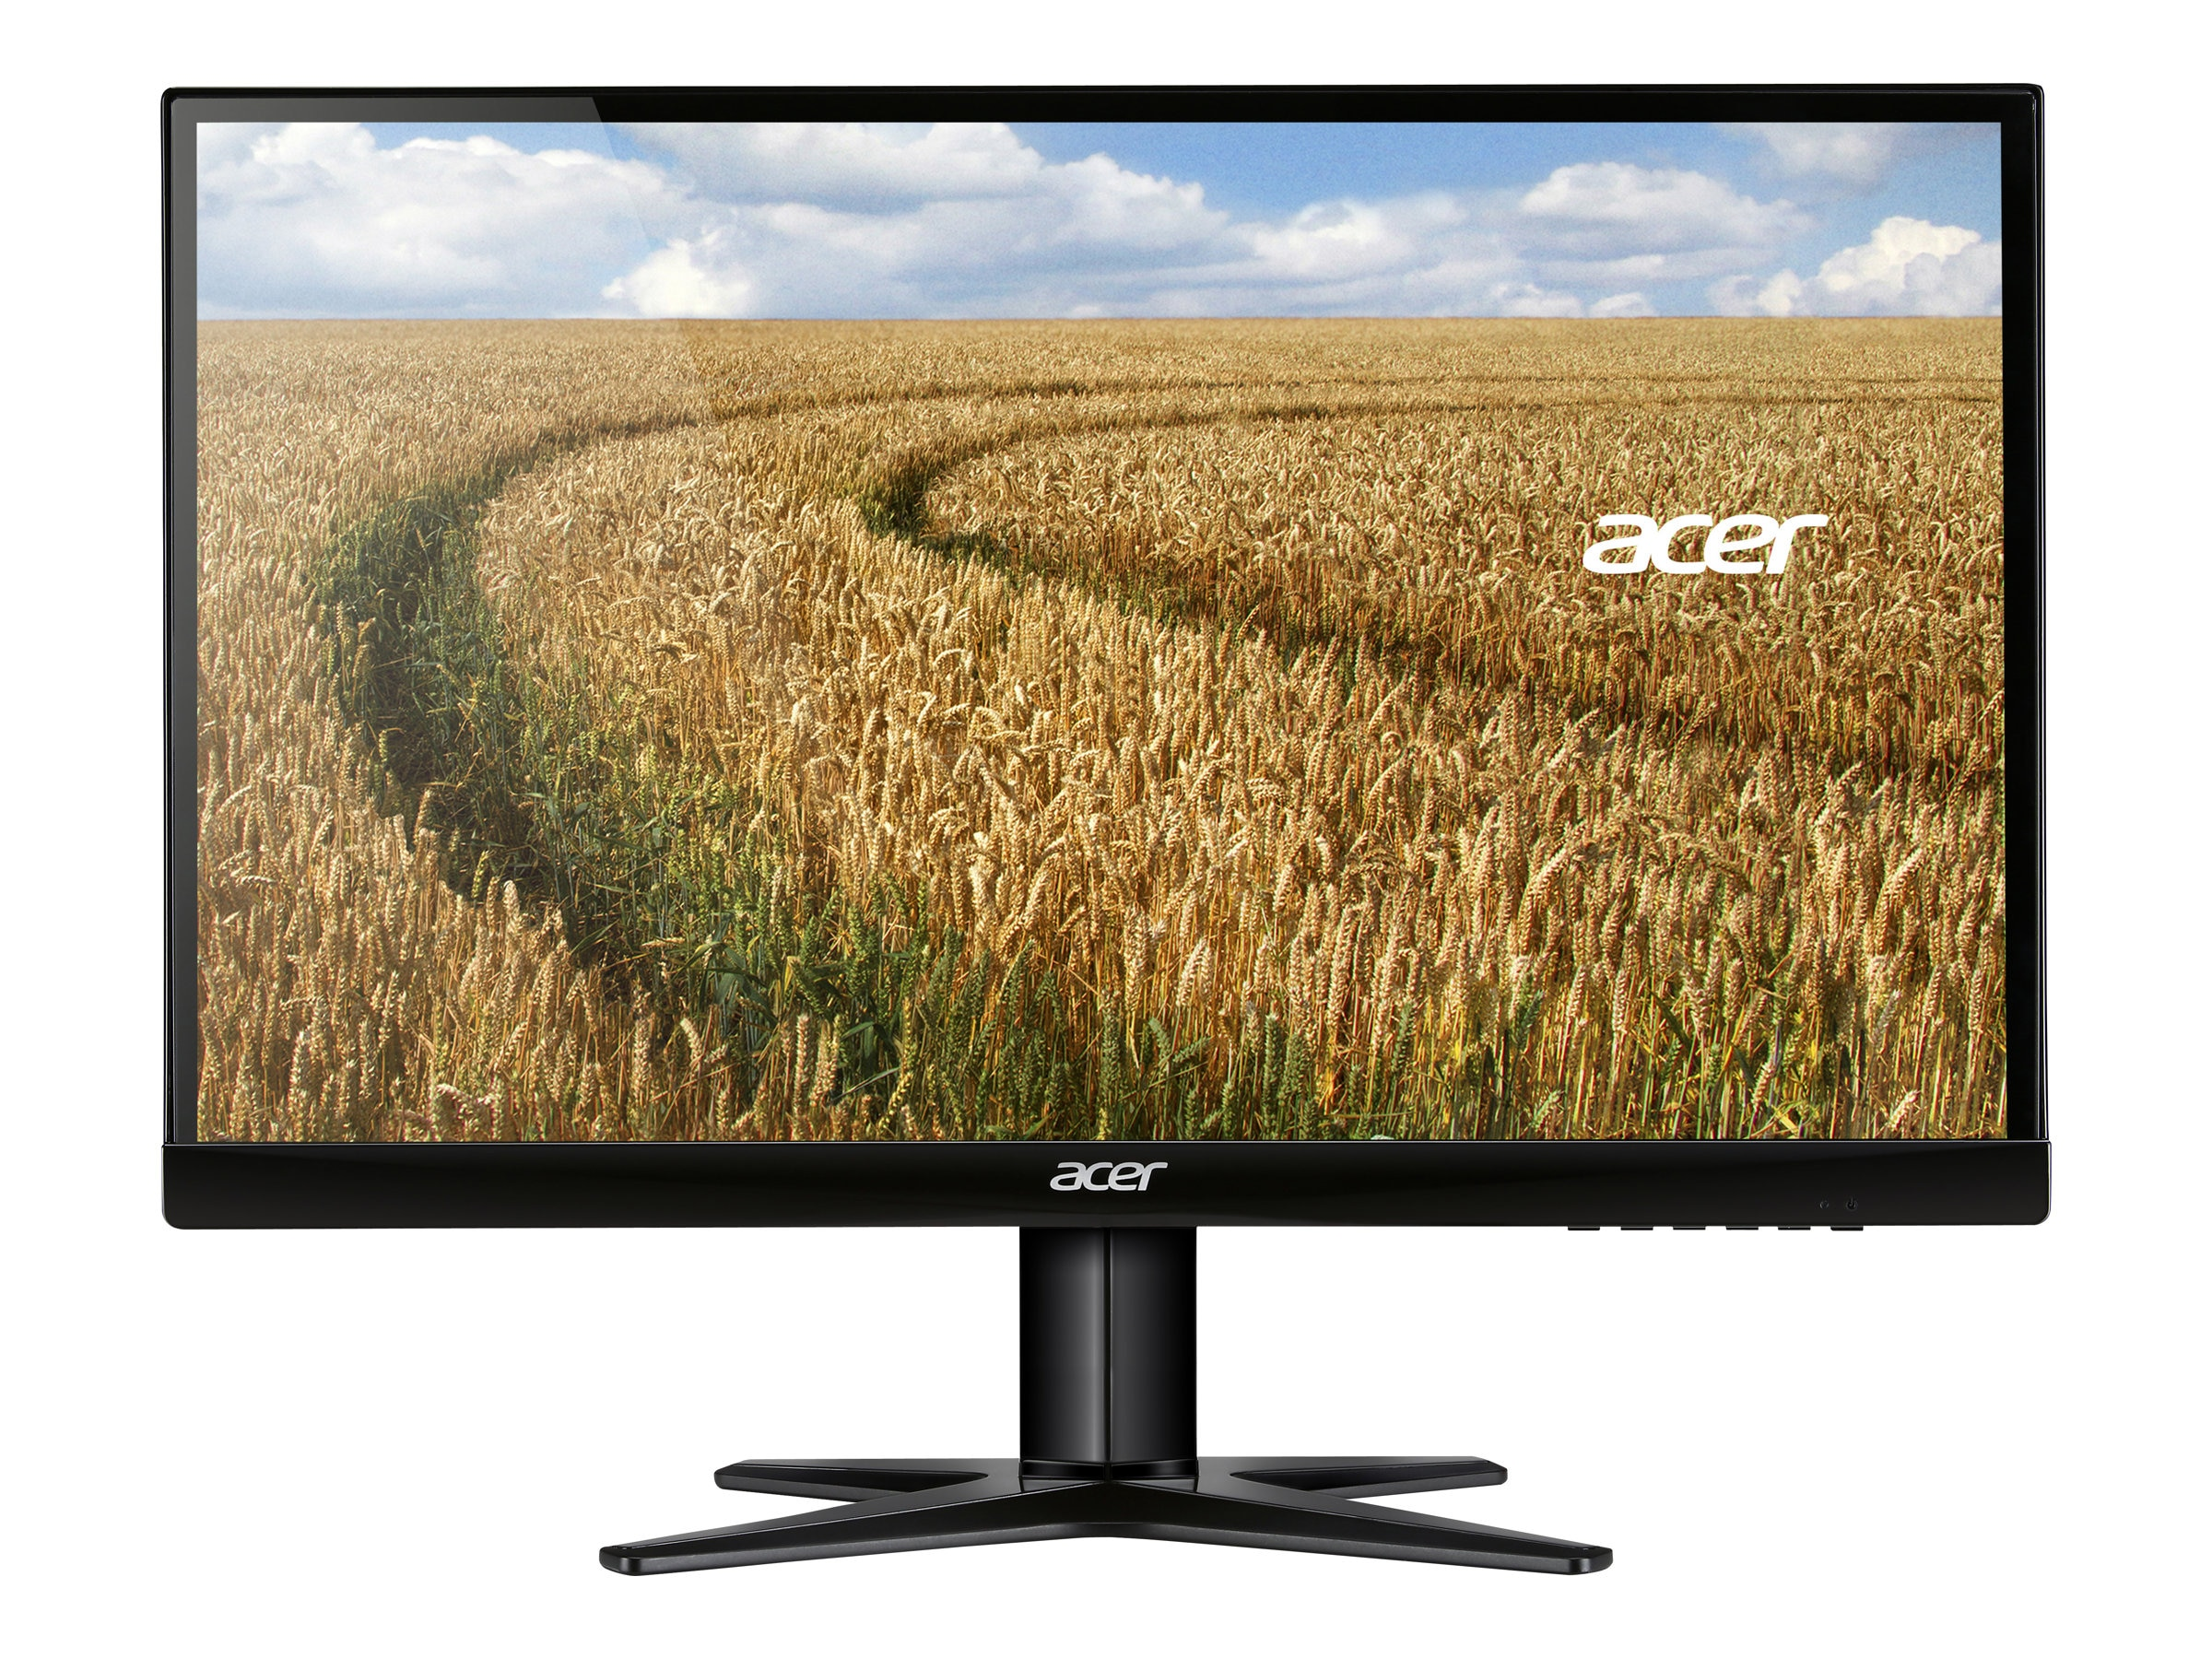 Acer 23.8 G247HYL bmidx Full HD LED-LCD Monitor, Black